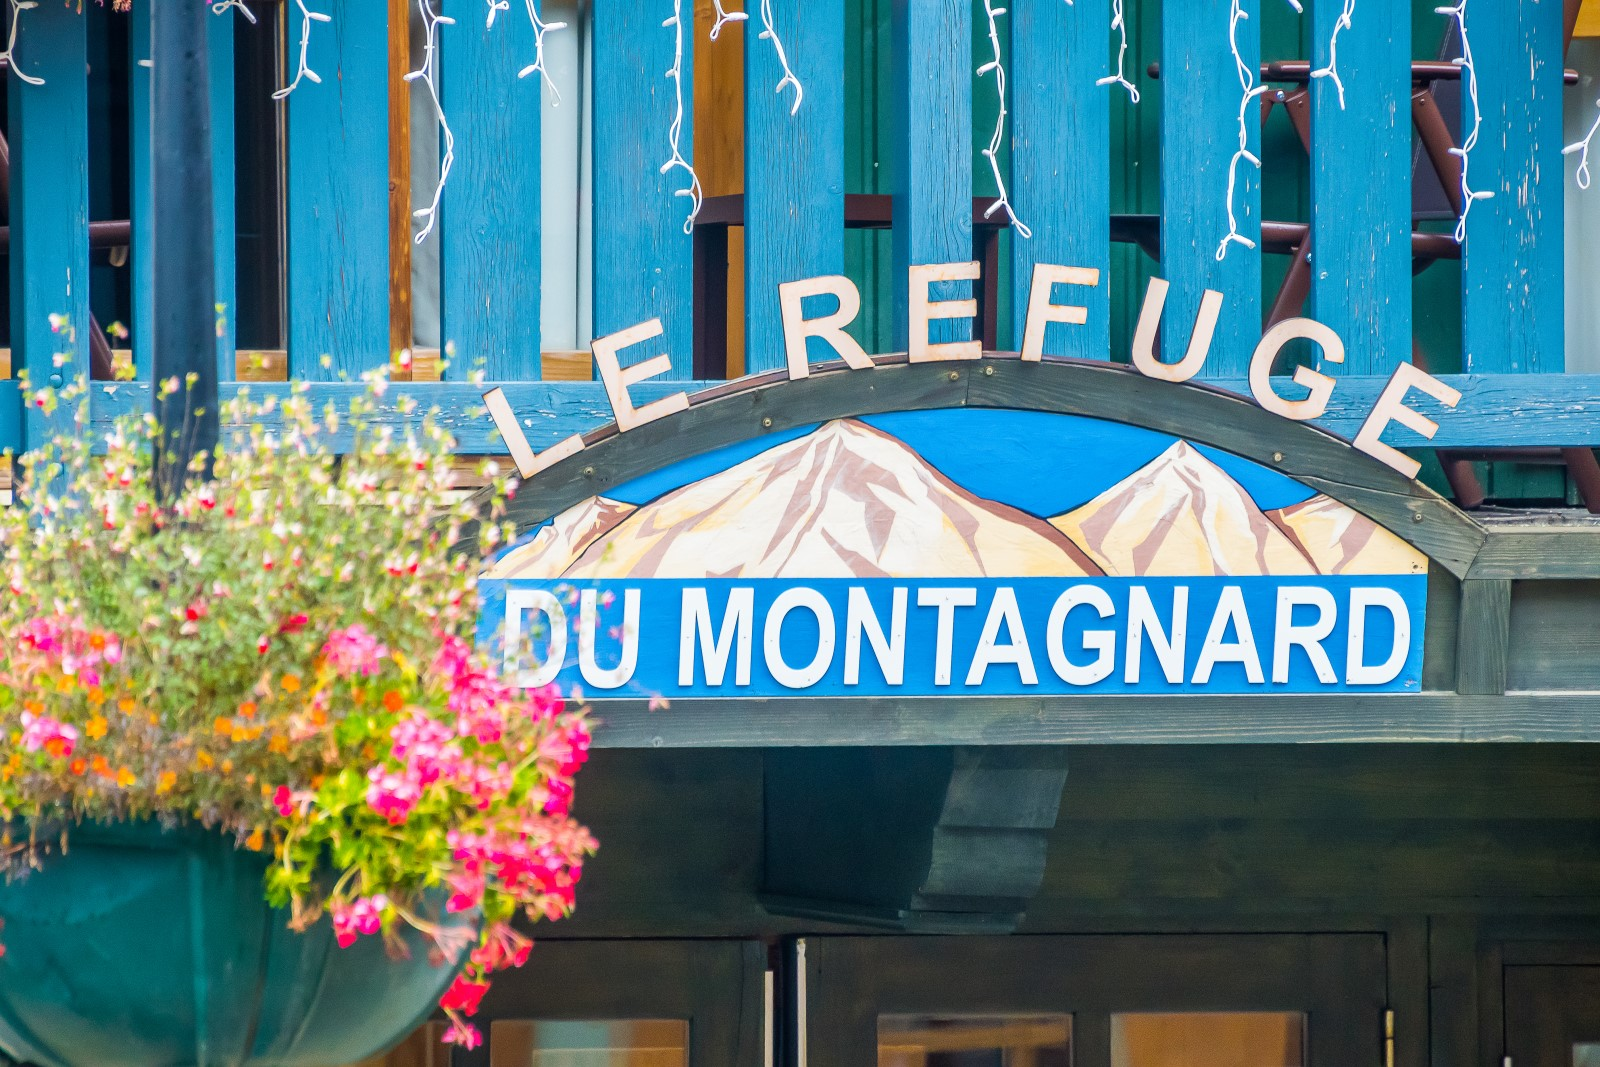 refuge du montagnard in summer